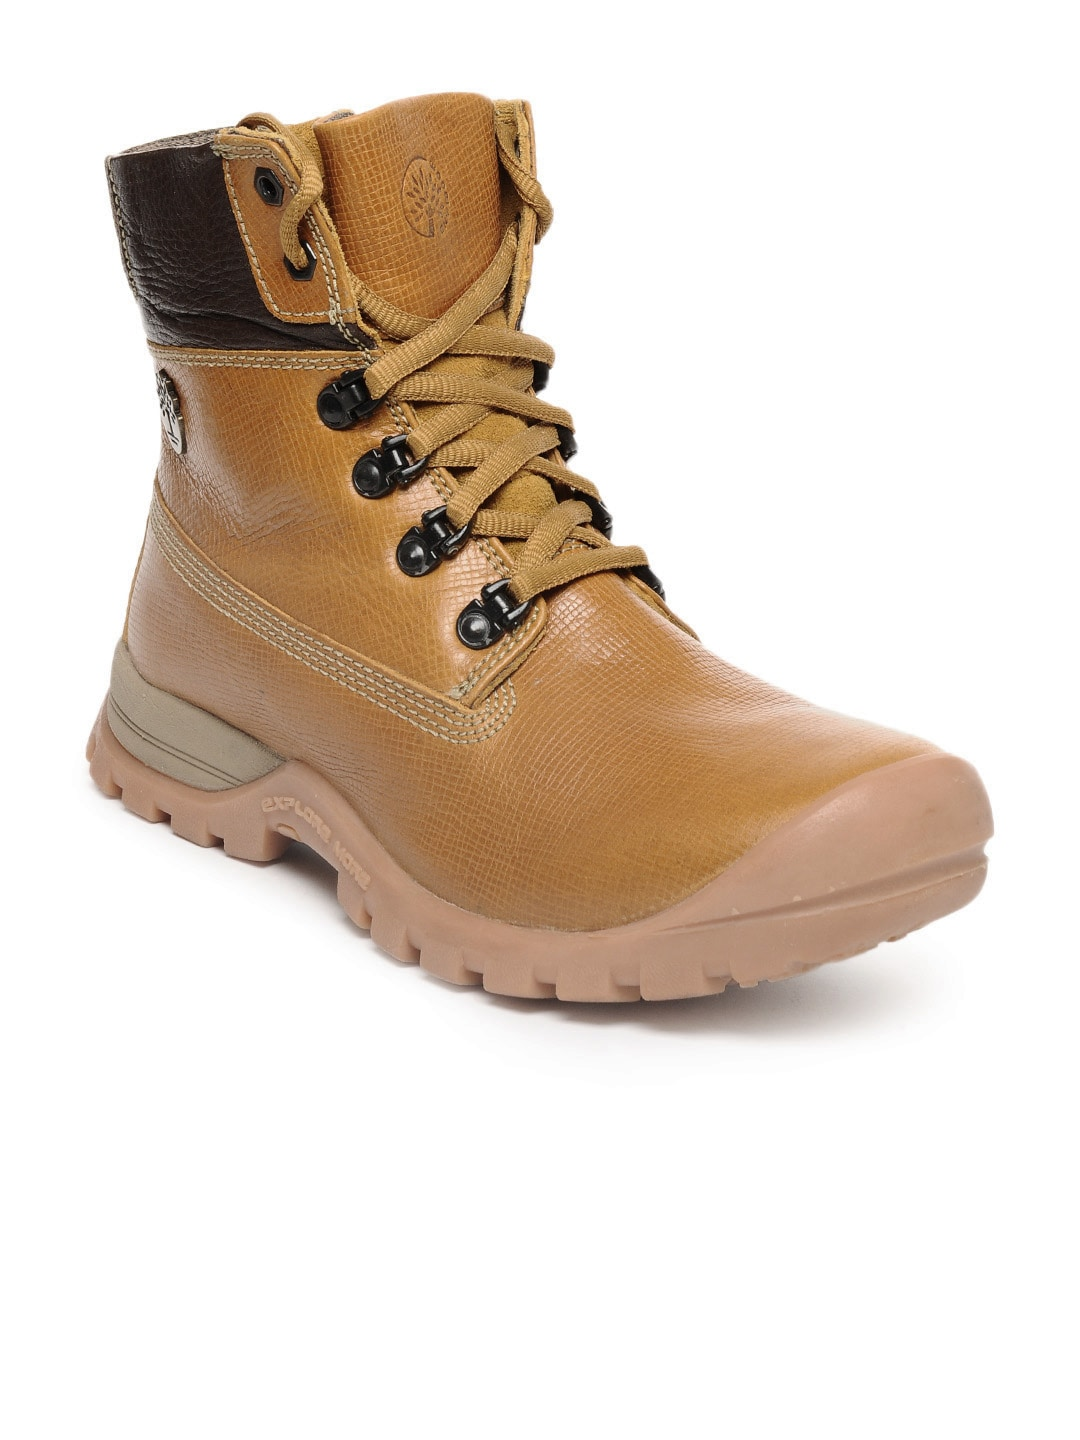 Buy Woodland Men Tan Boots - 632 - Footwear for Men - 84408